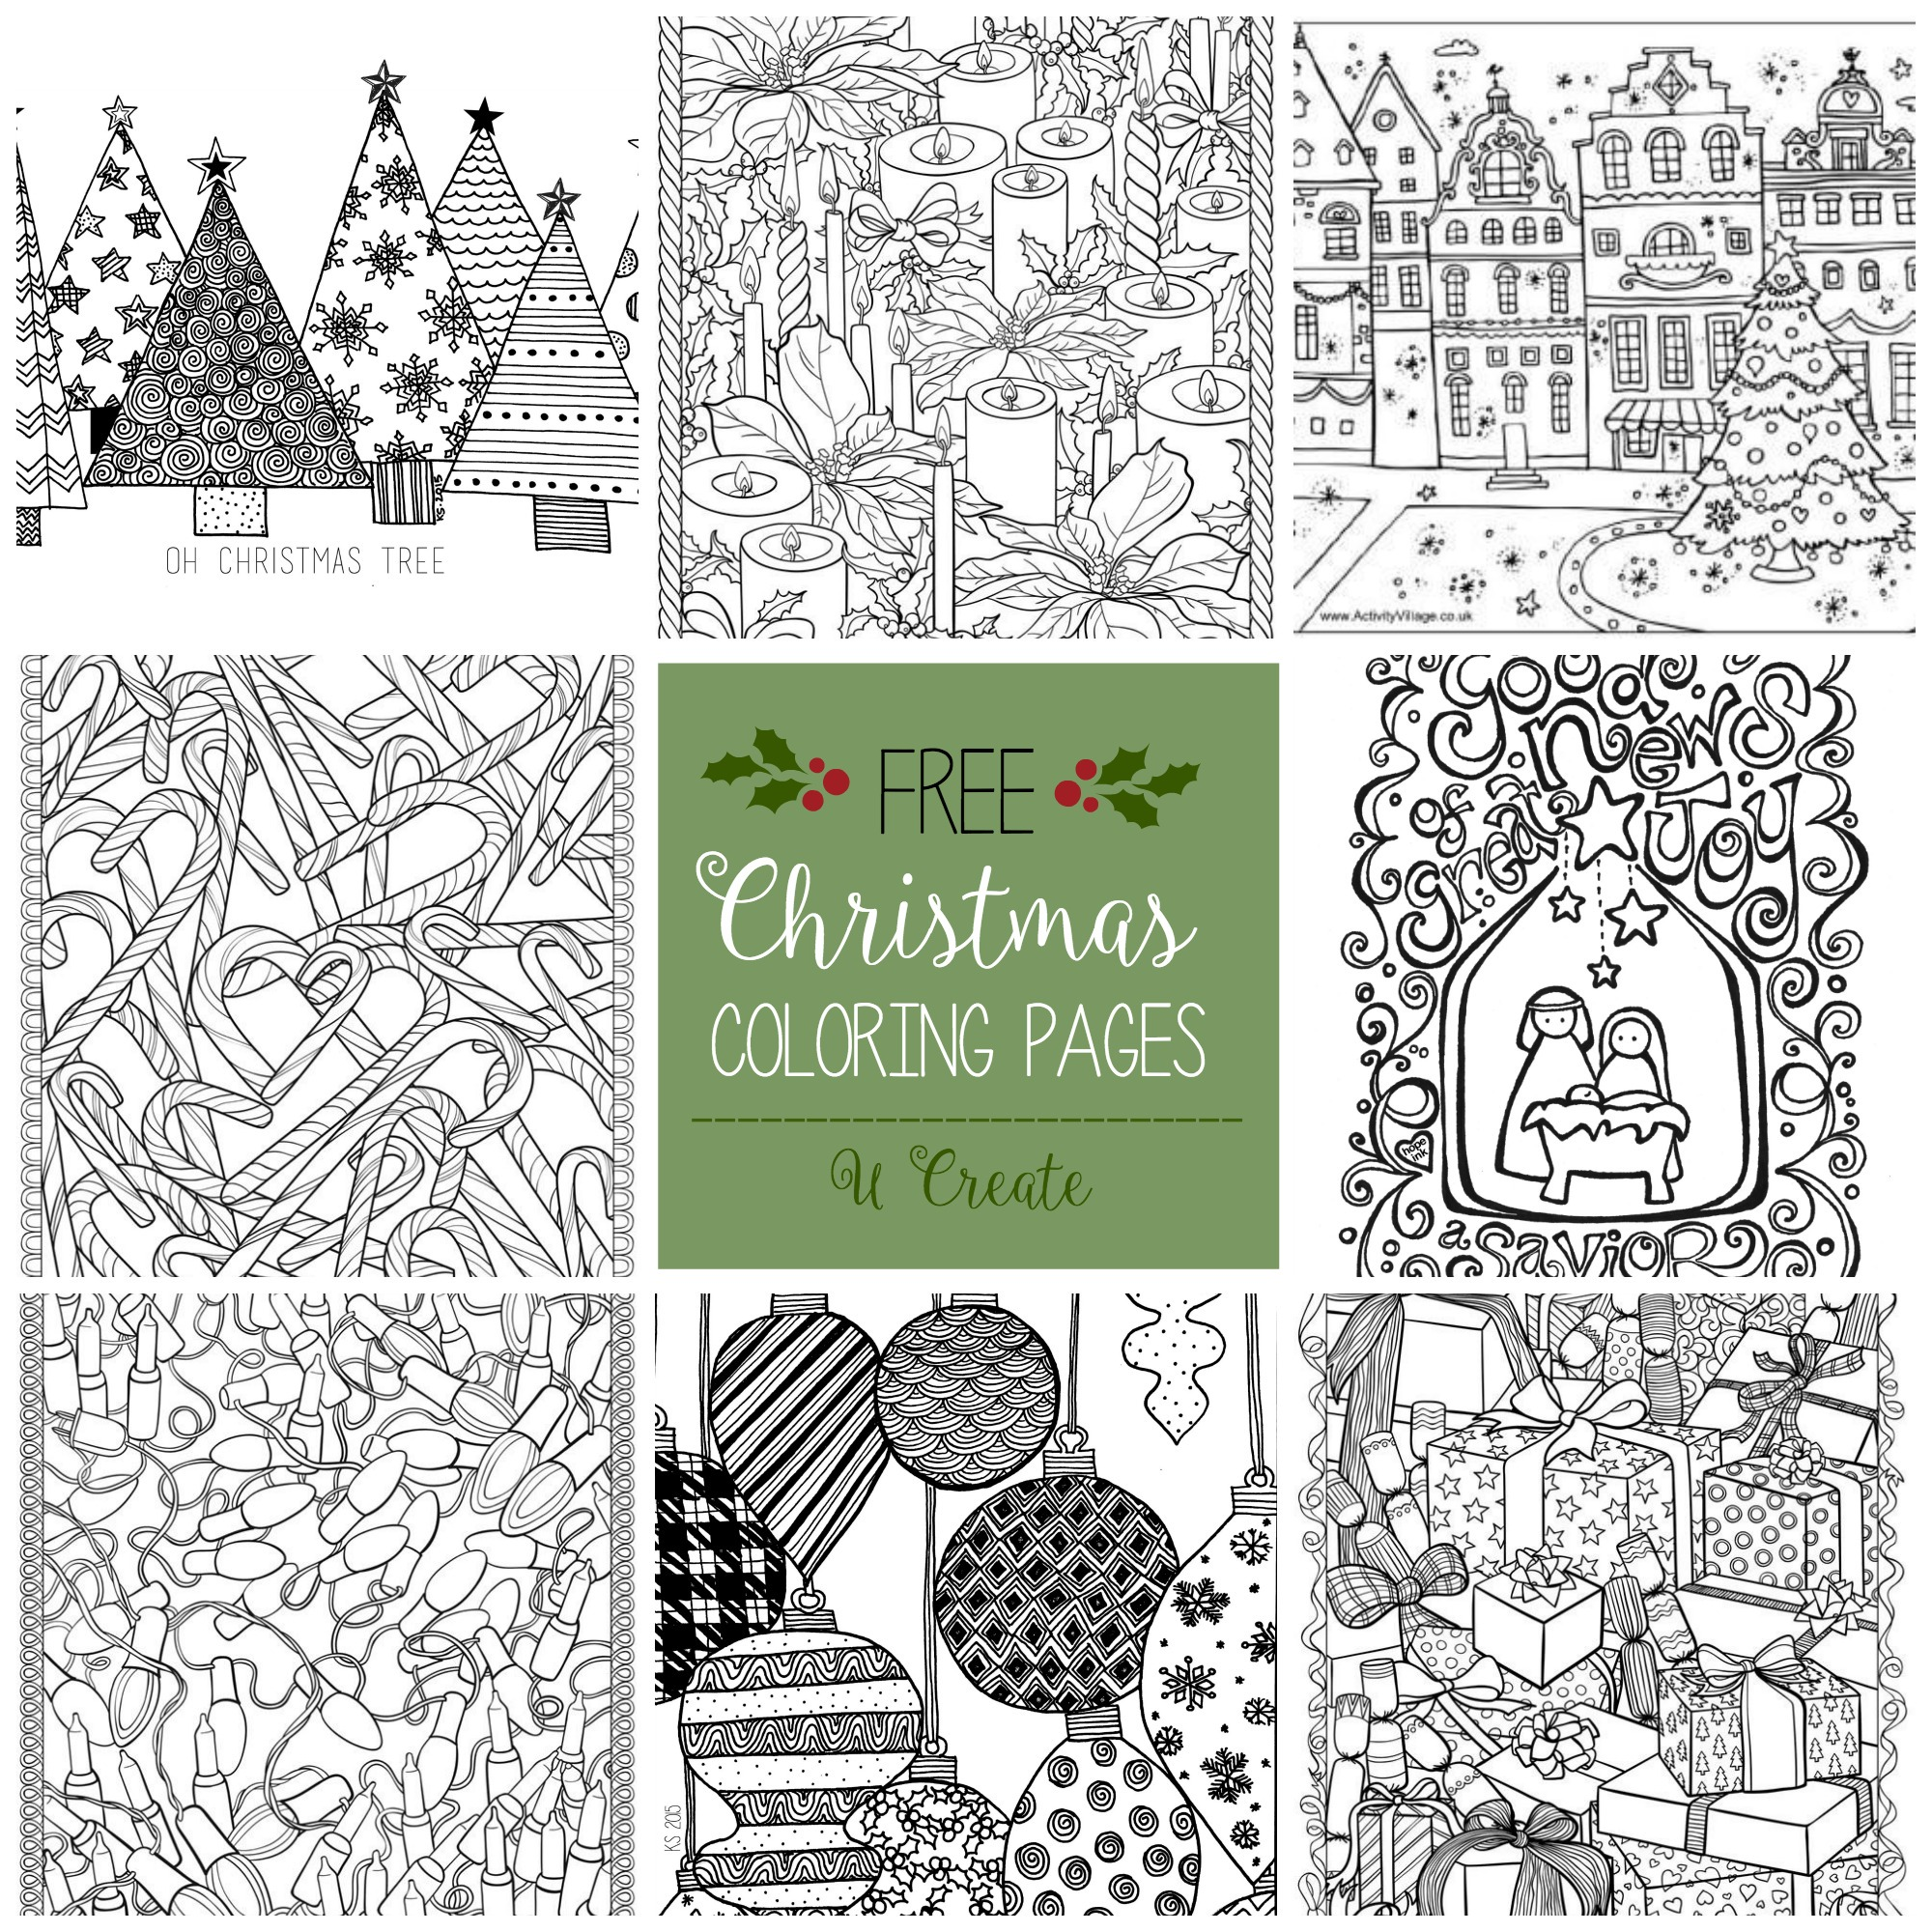 Christmas Village Coloring Pages With Free Adult U Create